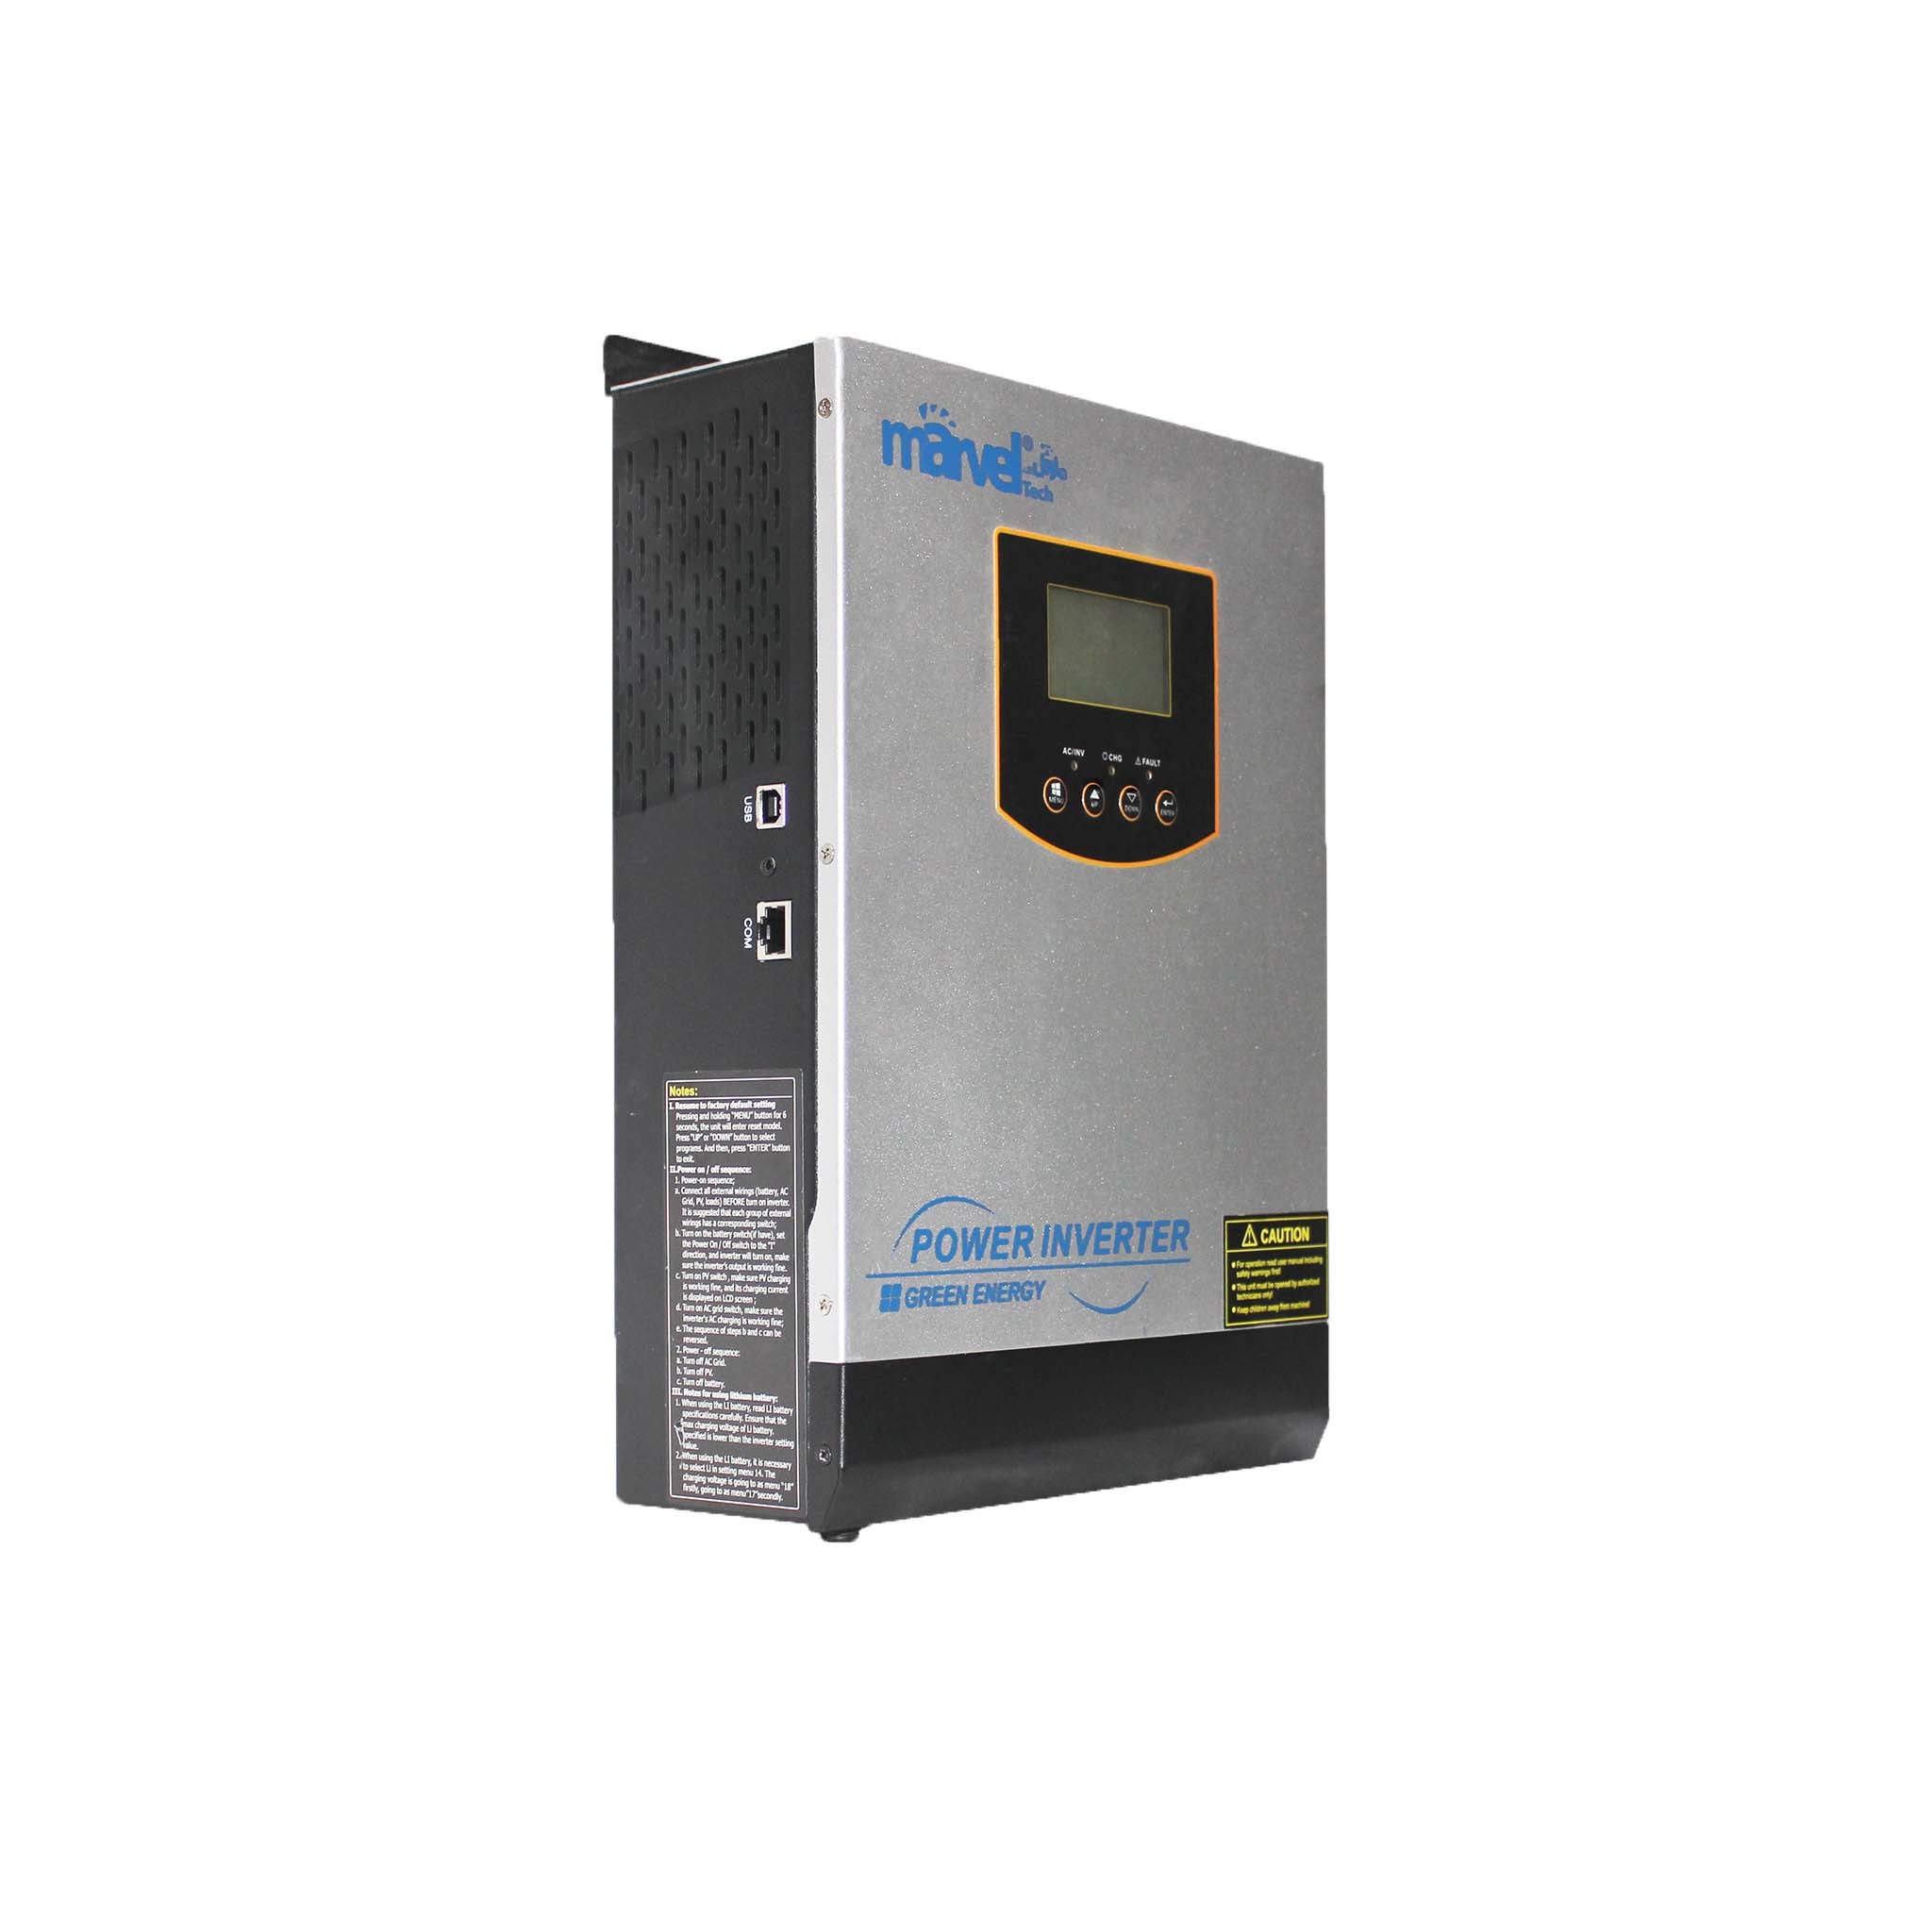 INVERTER MARVEL-SOLAR  1000W/12V CHARGER 20A / MPPT PV 60-MAX WALL INVERTER  MIS II-1000/ PVPOWER 720W ,Inverters